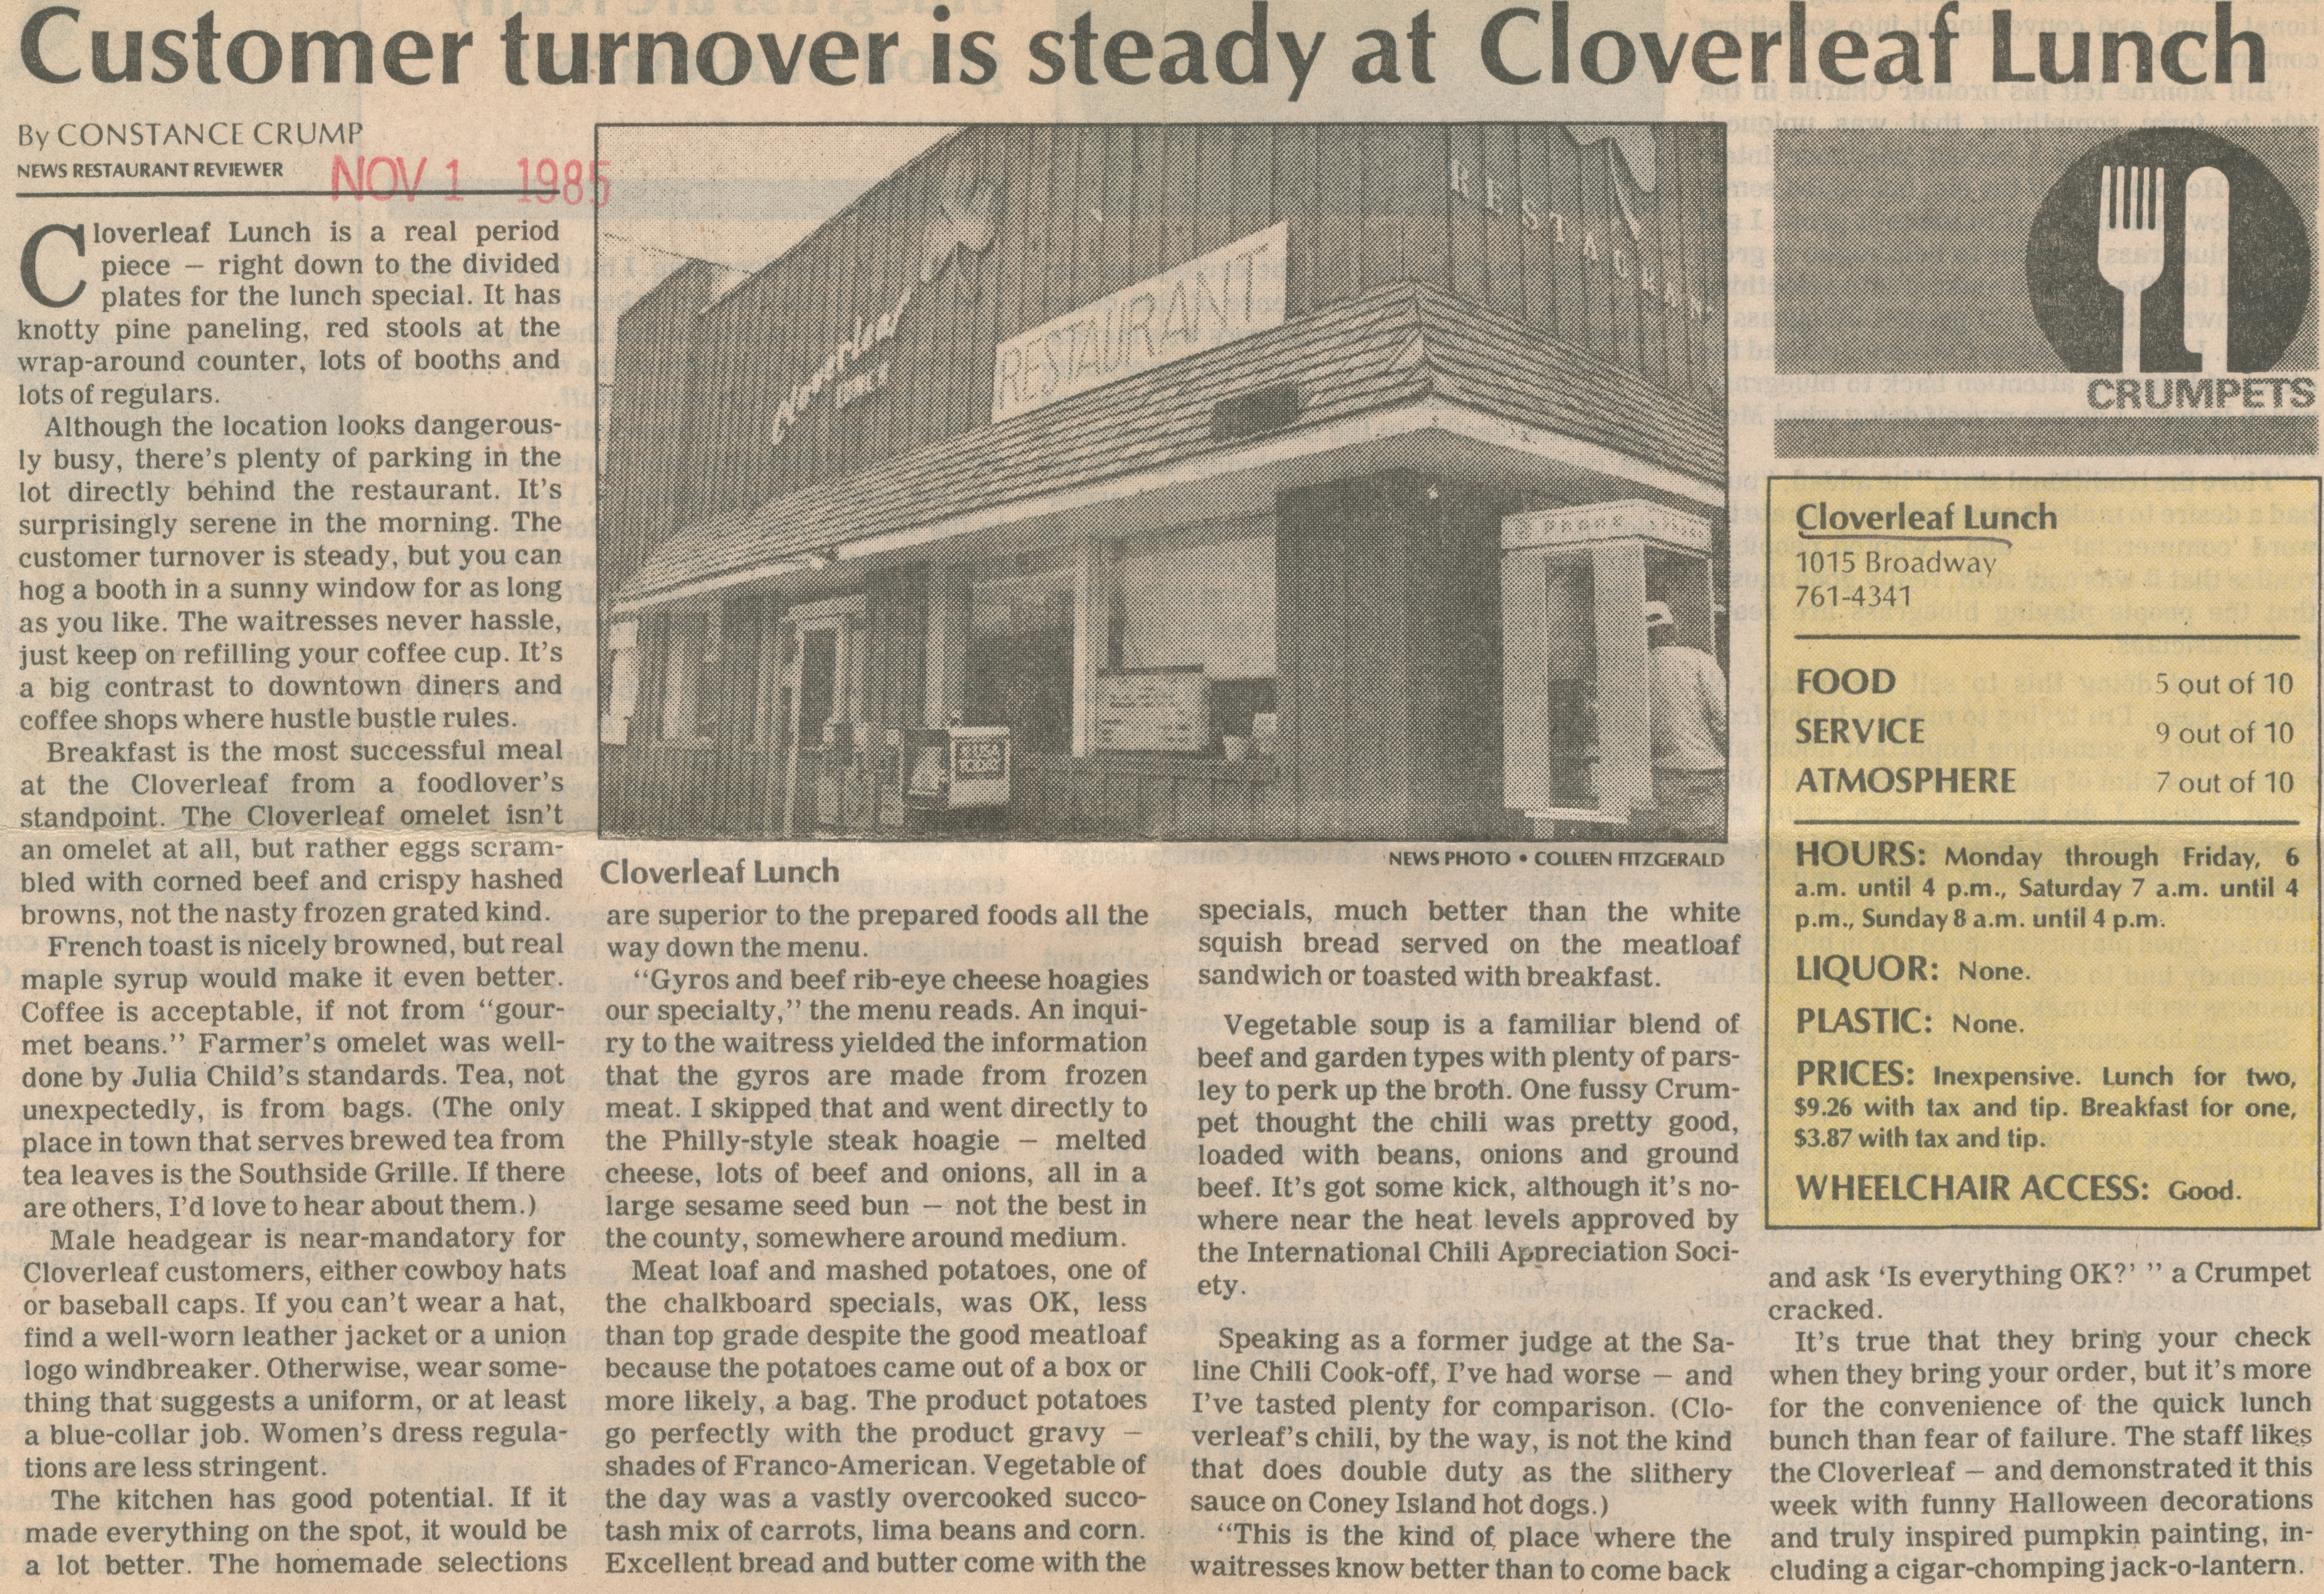 Customer Turnover Is Steady At Cloverleaf Lunch image